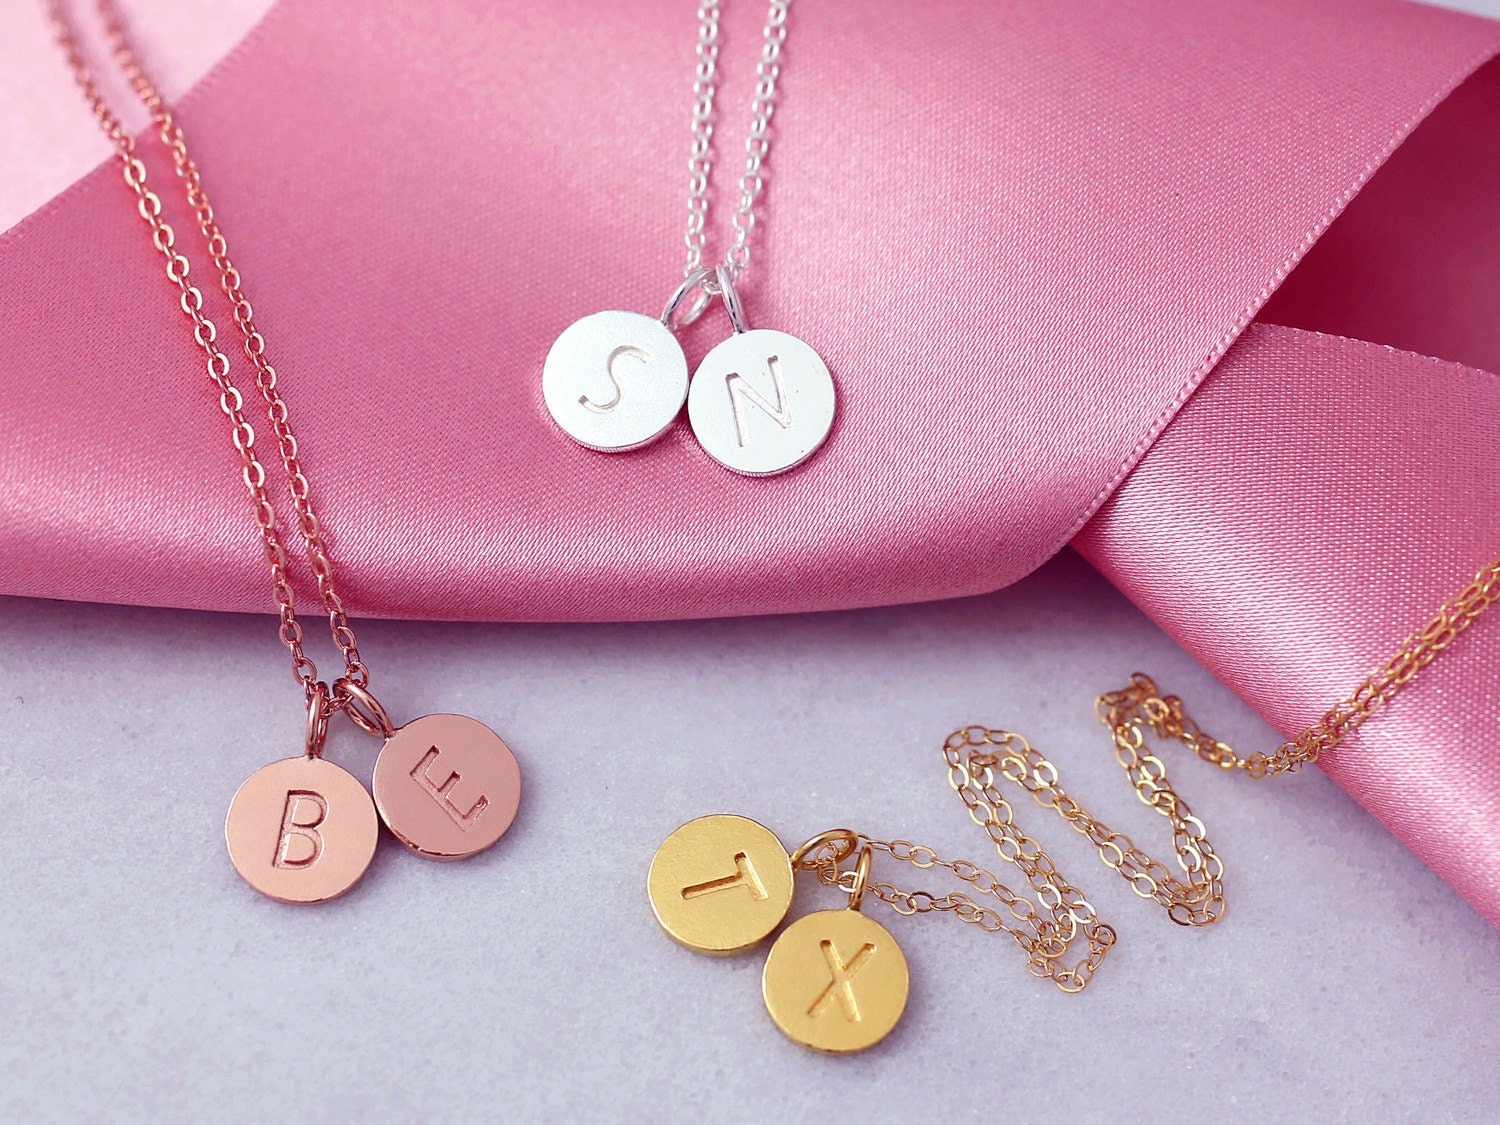 Two Letter Necklace Tiny Letter Necklace Dainty Thin Chain